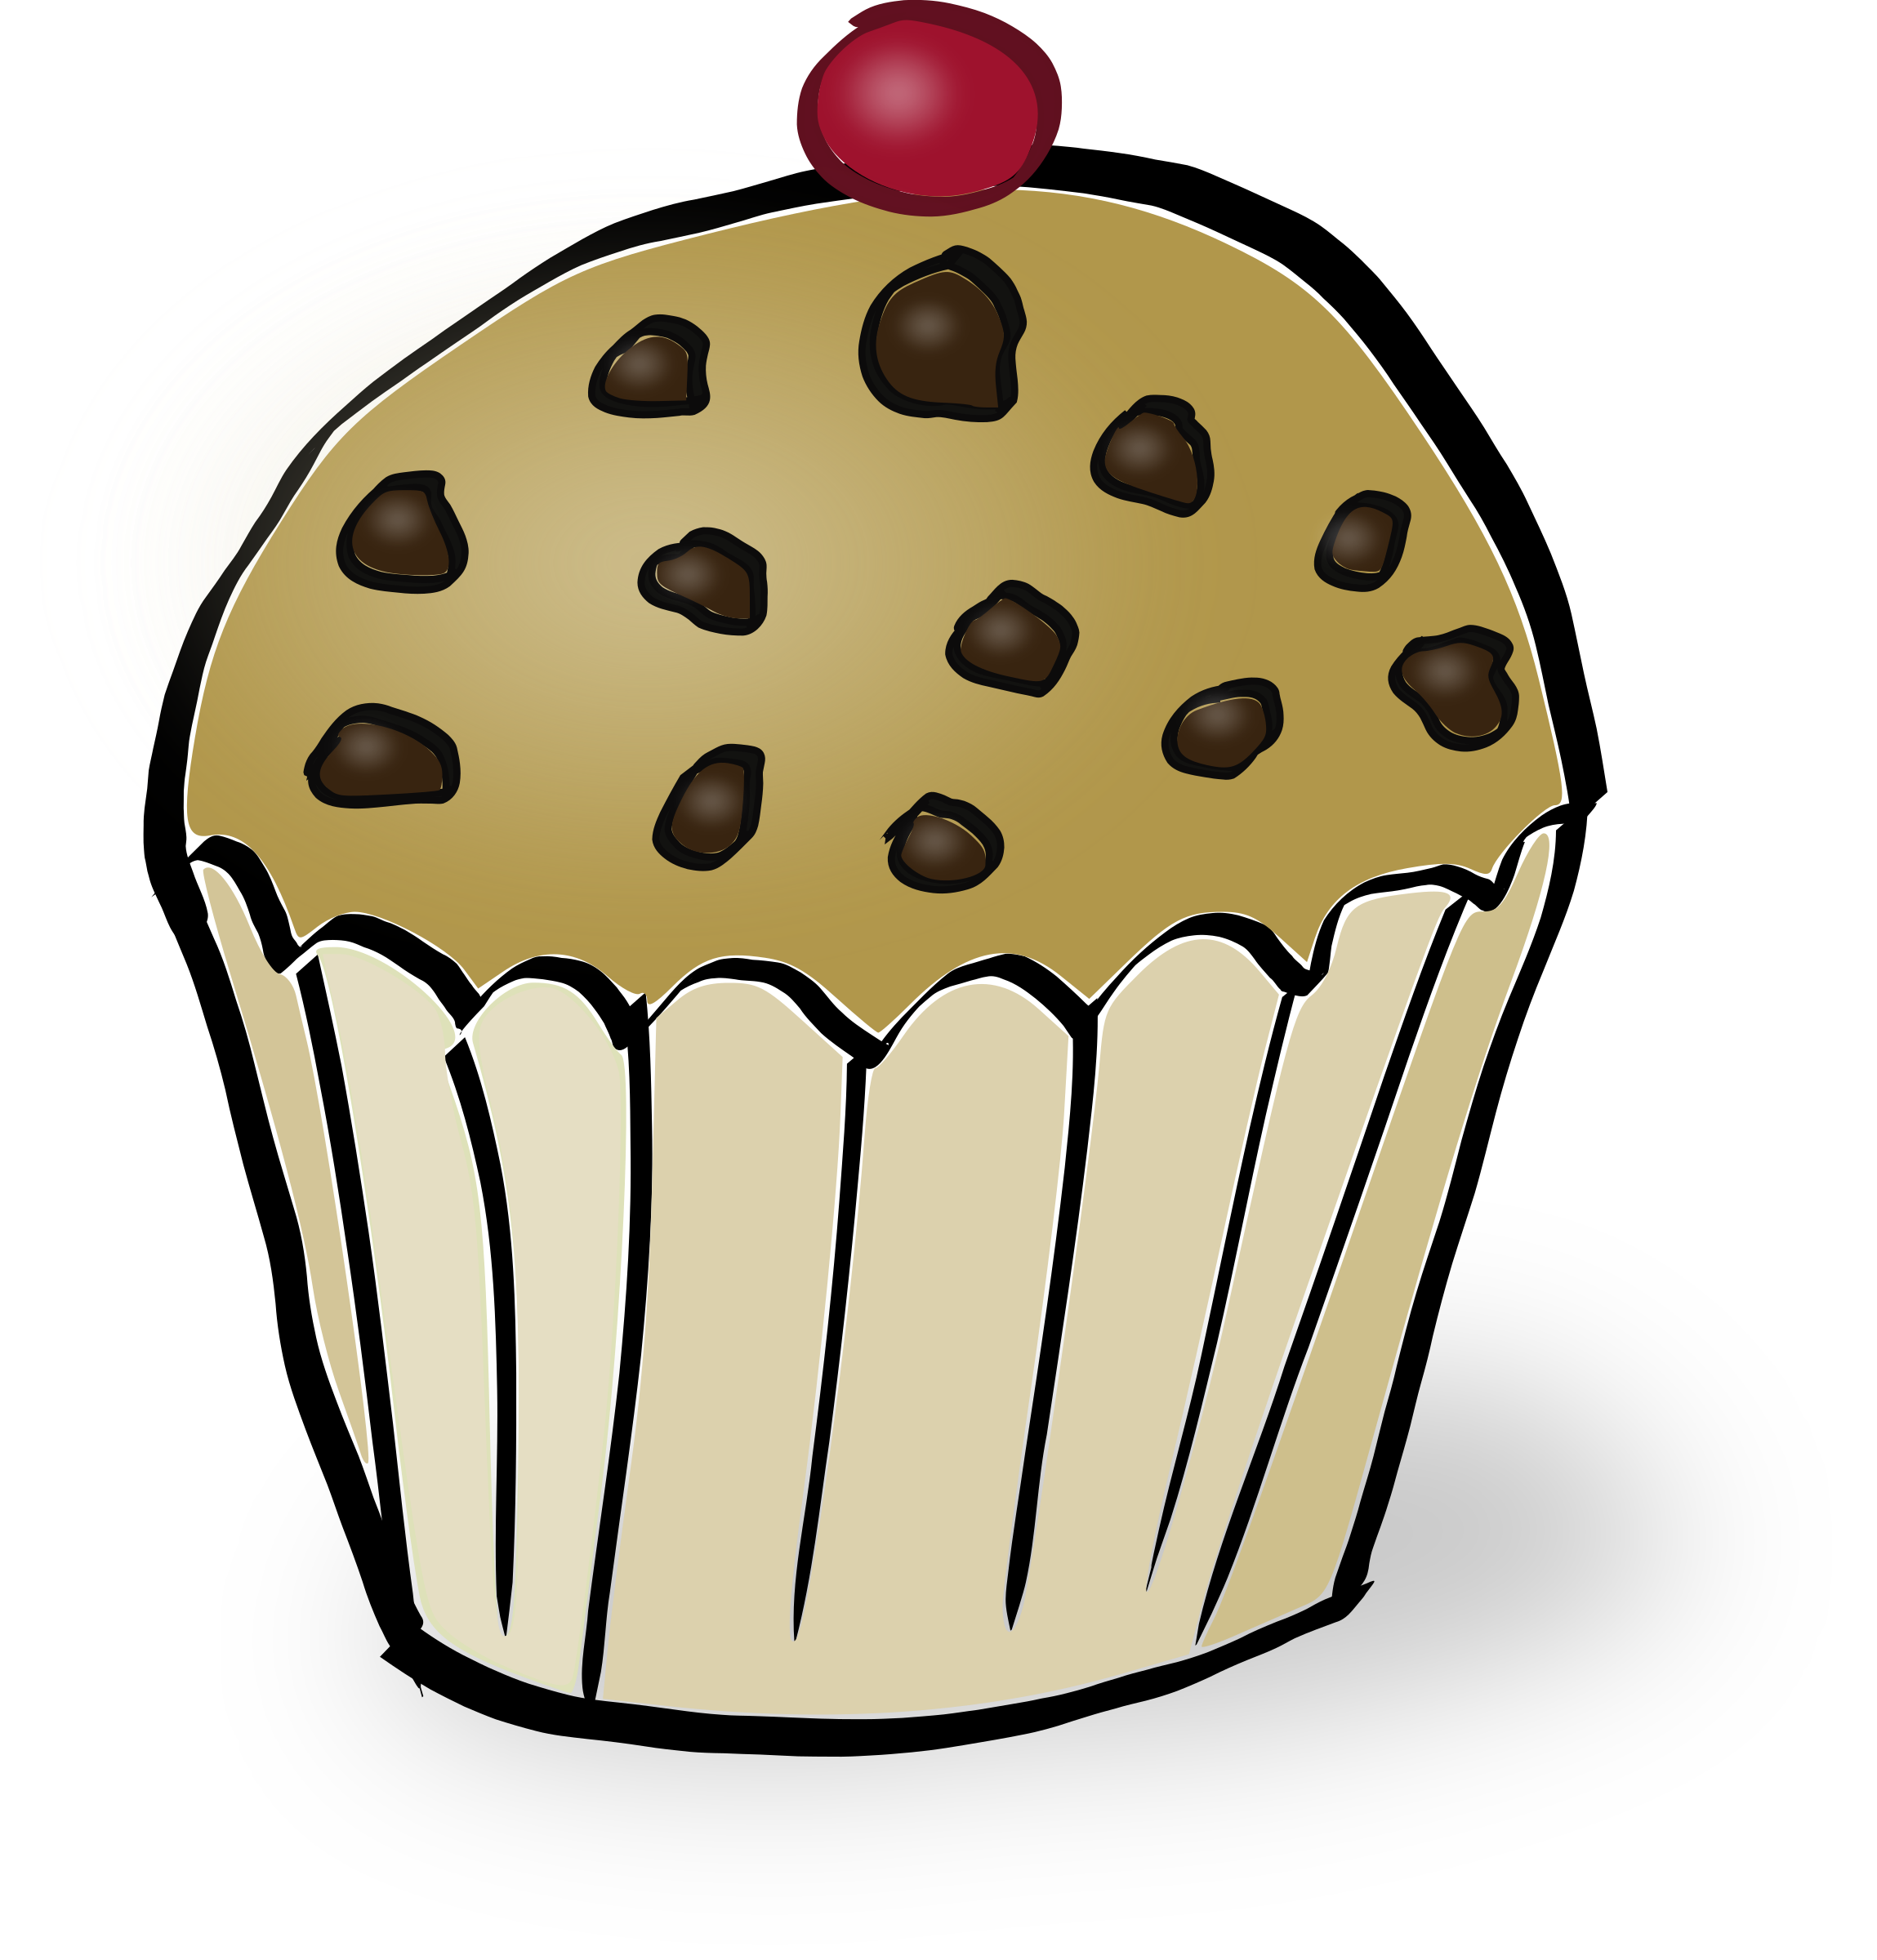 muffin svg cartoon